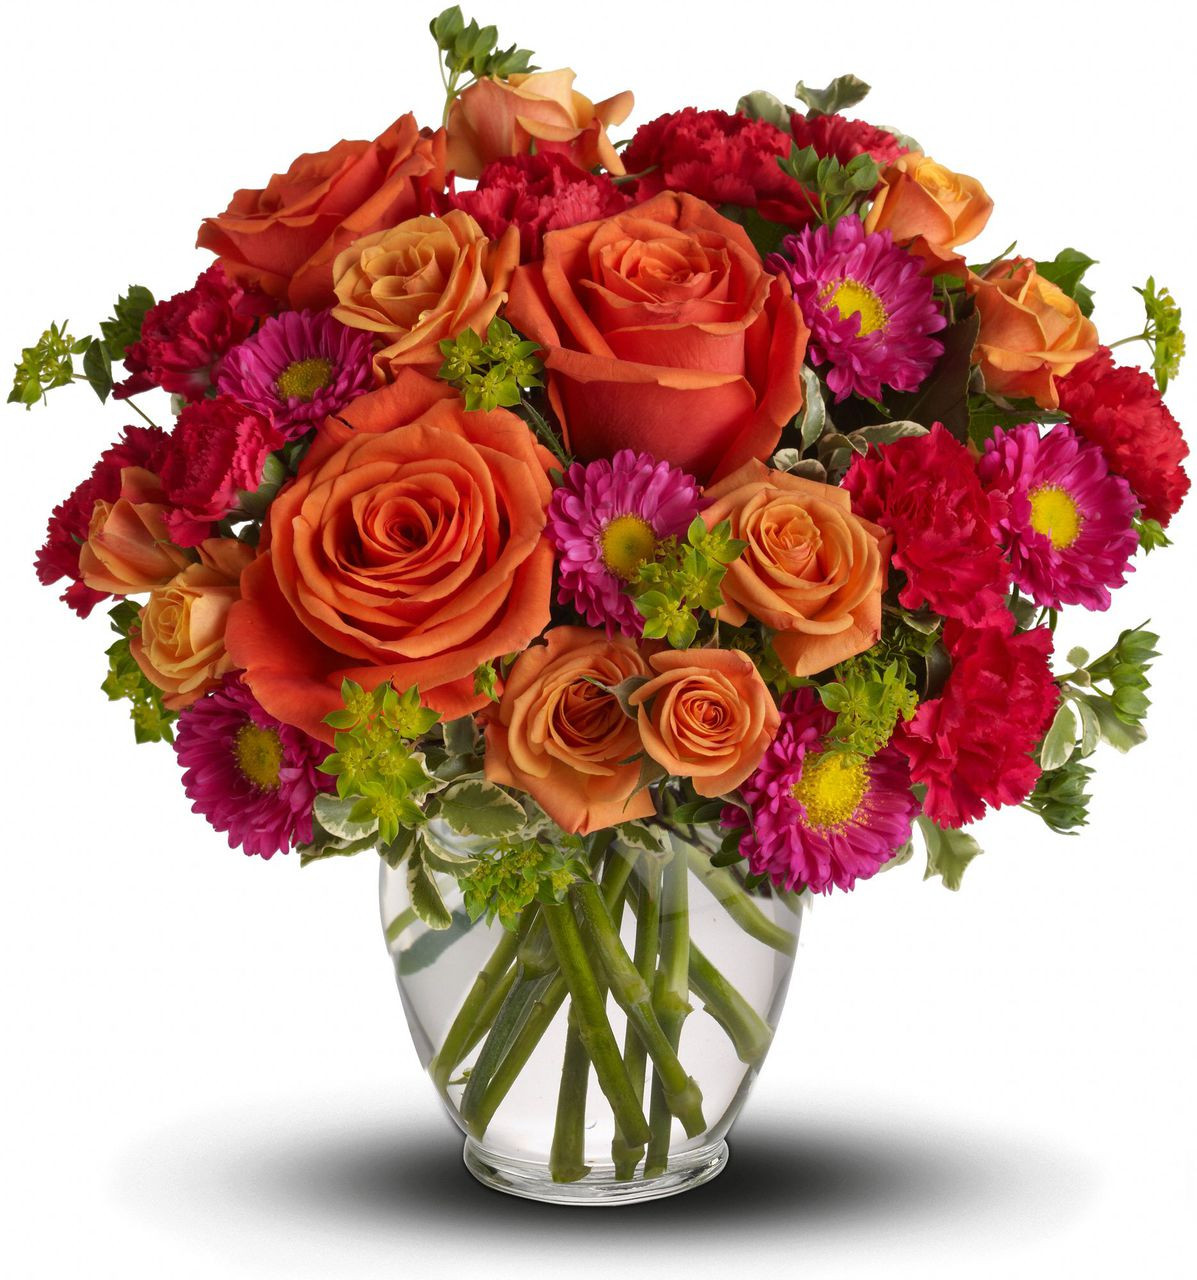 Florist delivery washington dc rockville bethesda potomac how sweet it is with a mix of hot pink red and coral flowers such mightylinksfo